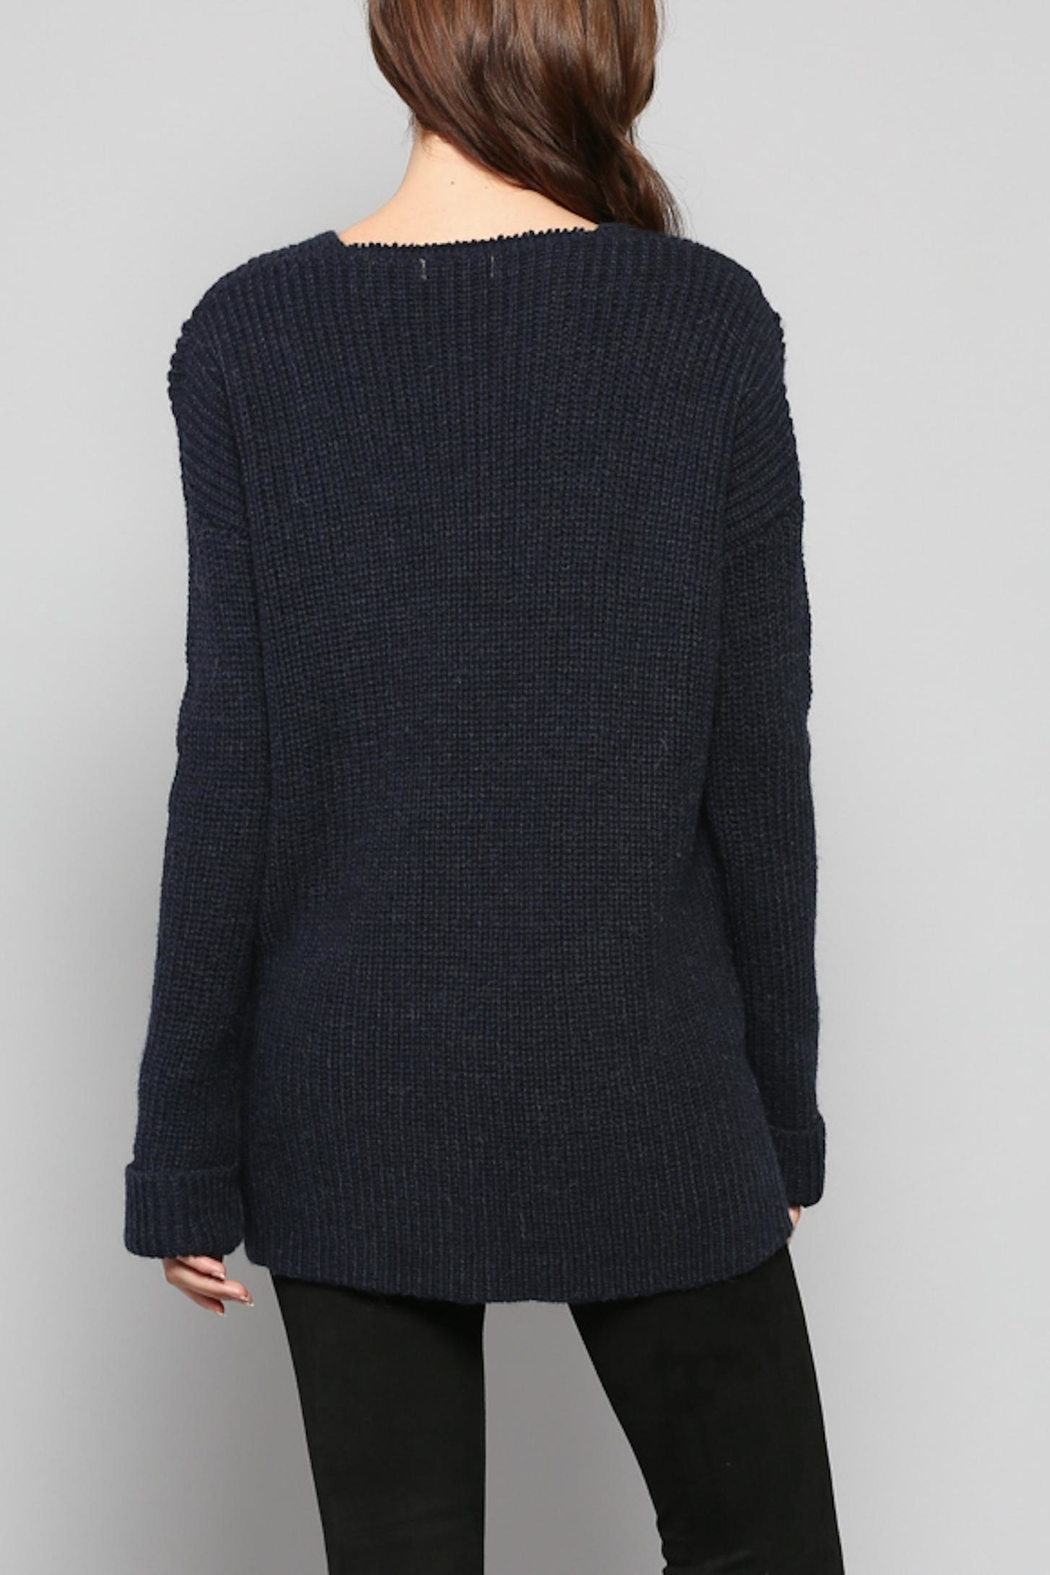 Rose & Eye Navy Cable Knit Top - Side Cropped Image